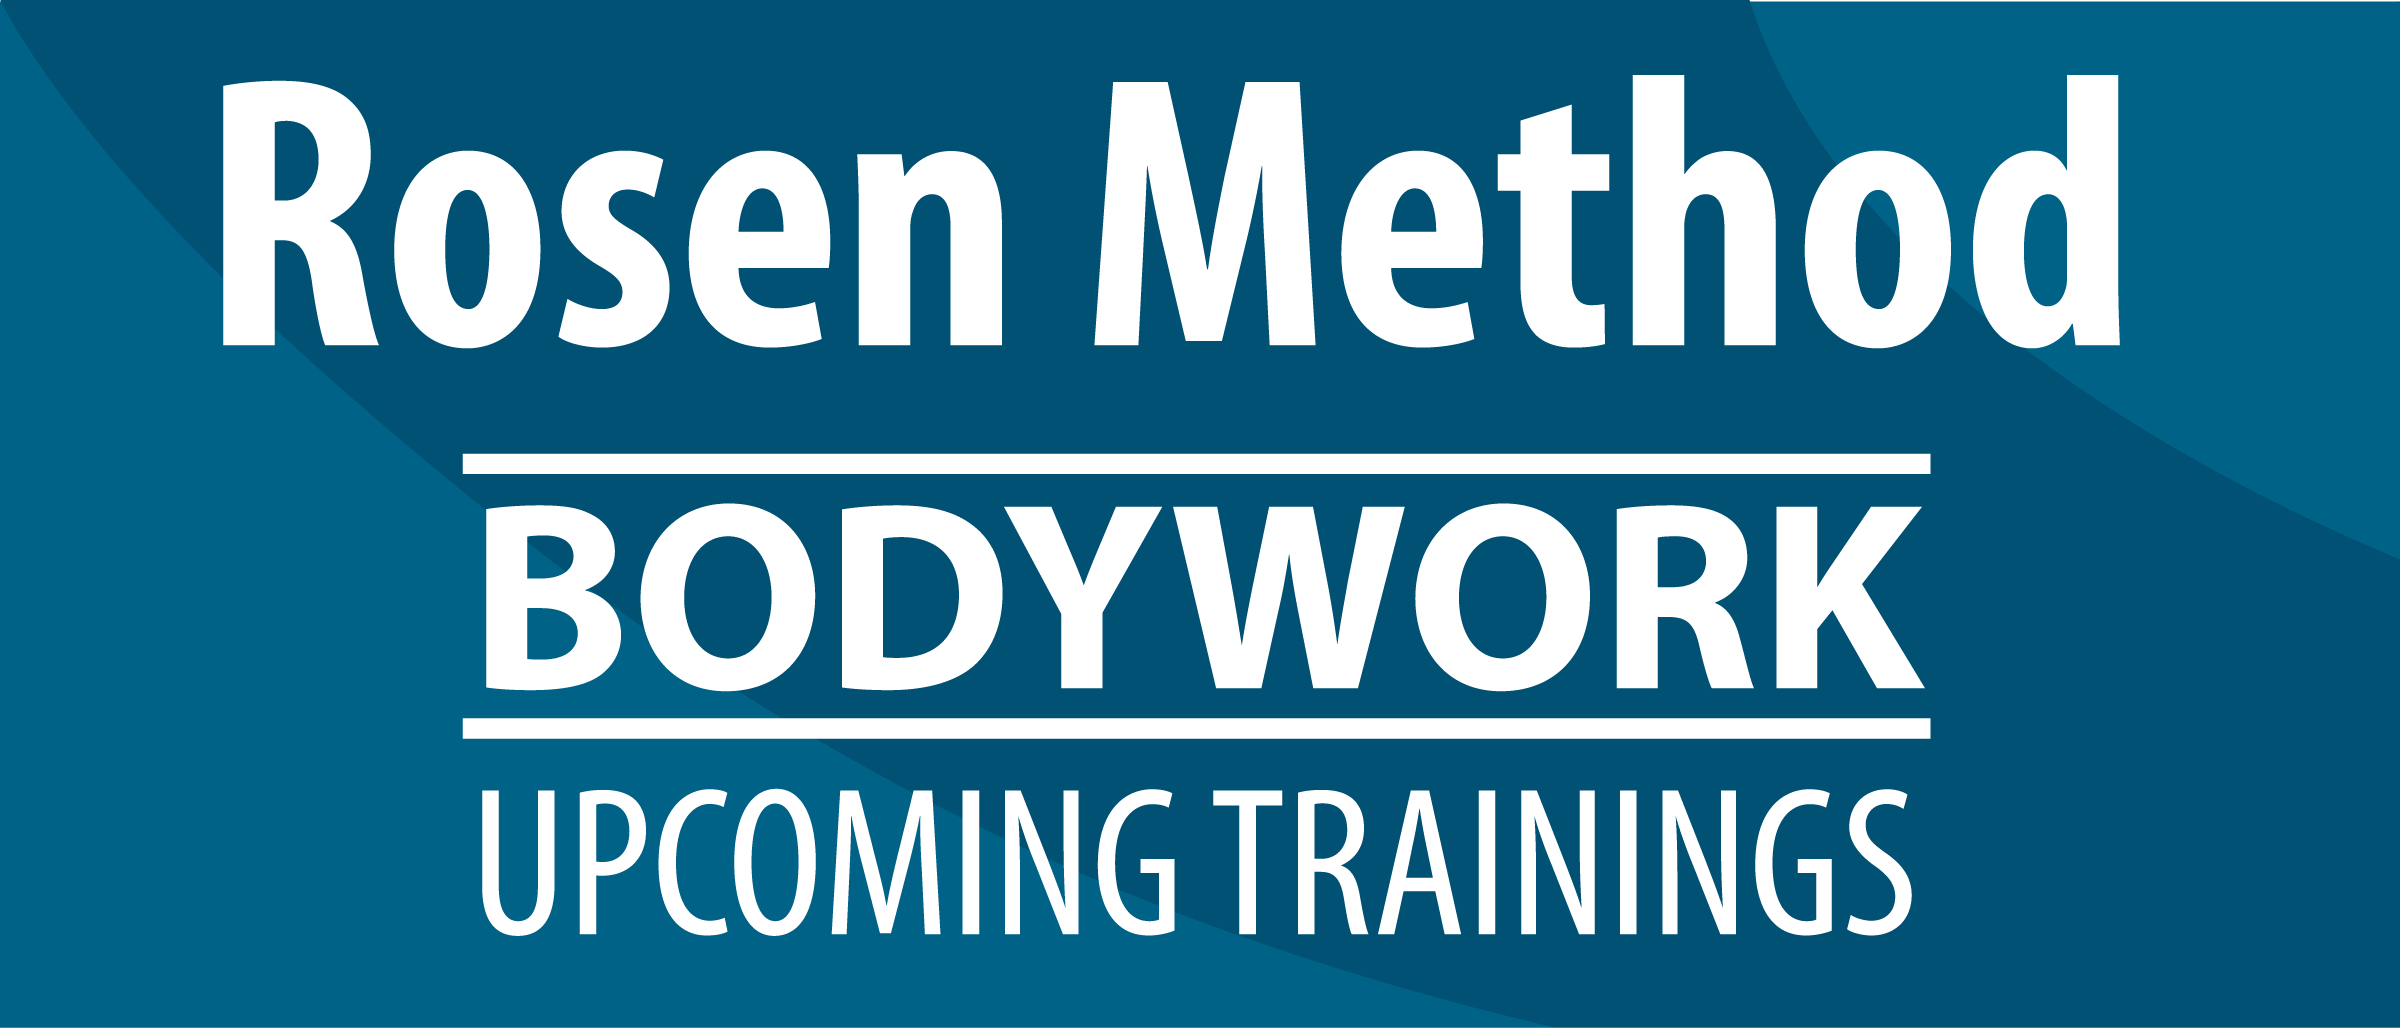 Rosen Method Bodywork Upcoming Training Sessions